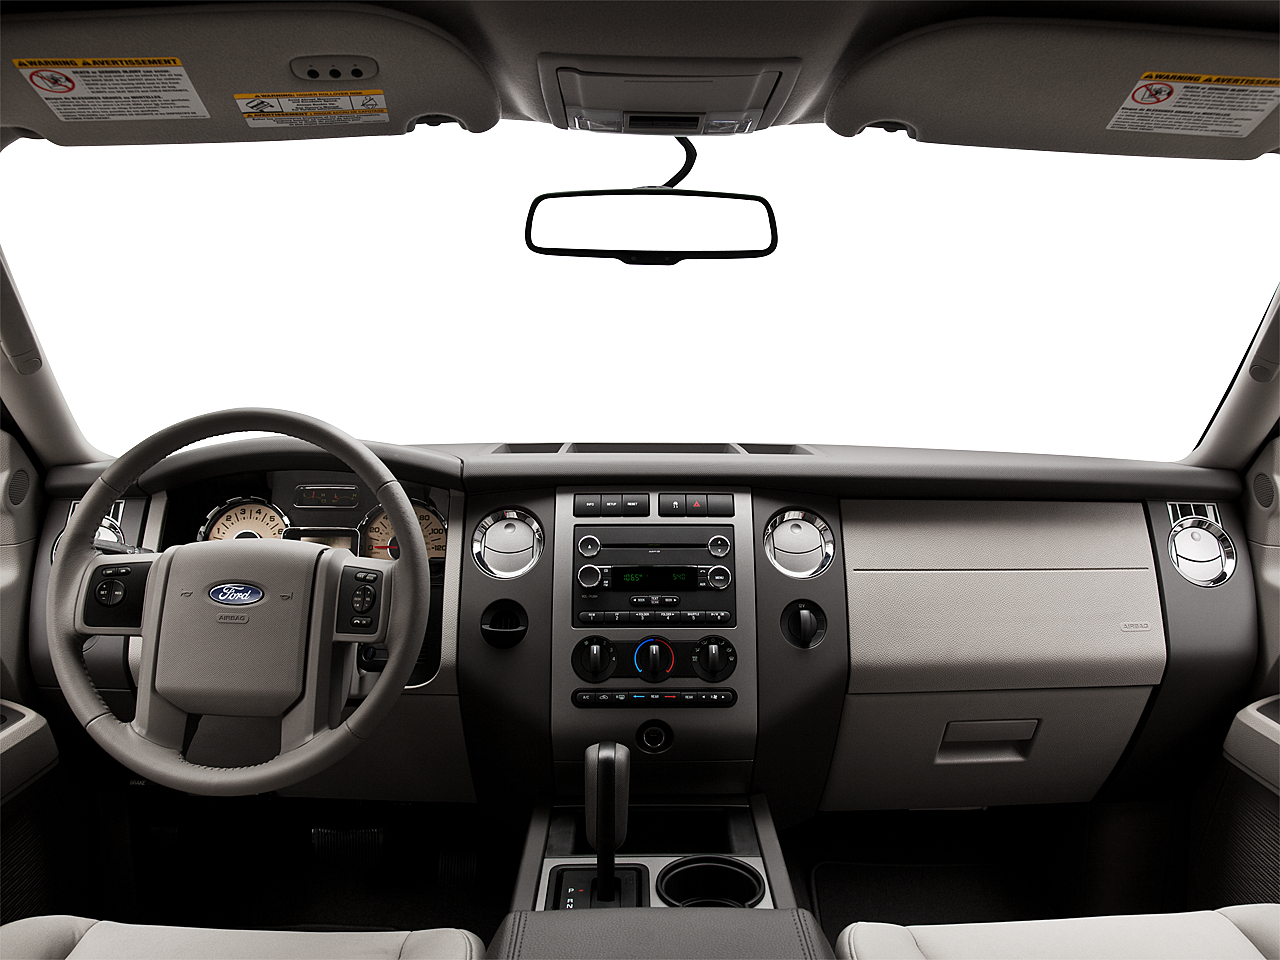 2011 Ford Expedition XLT, centered wide dash shot